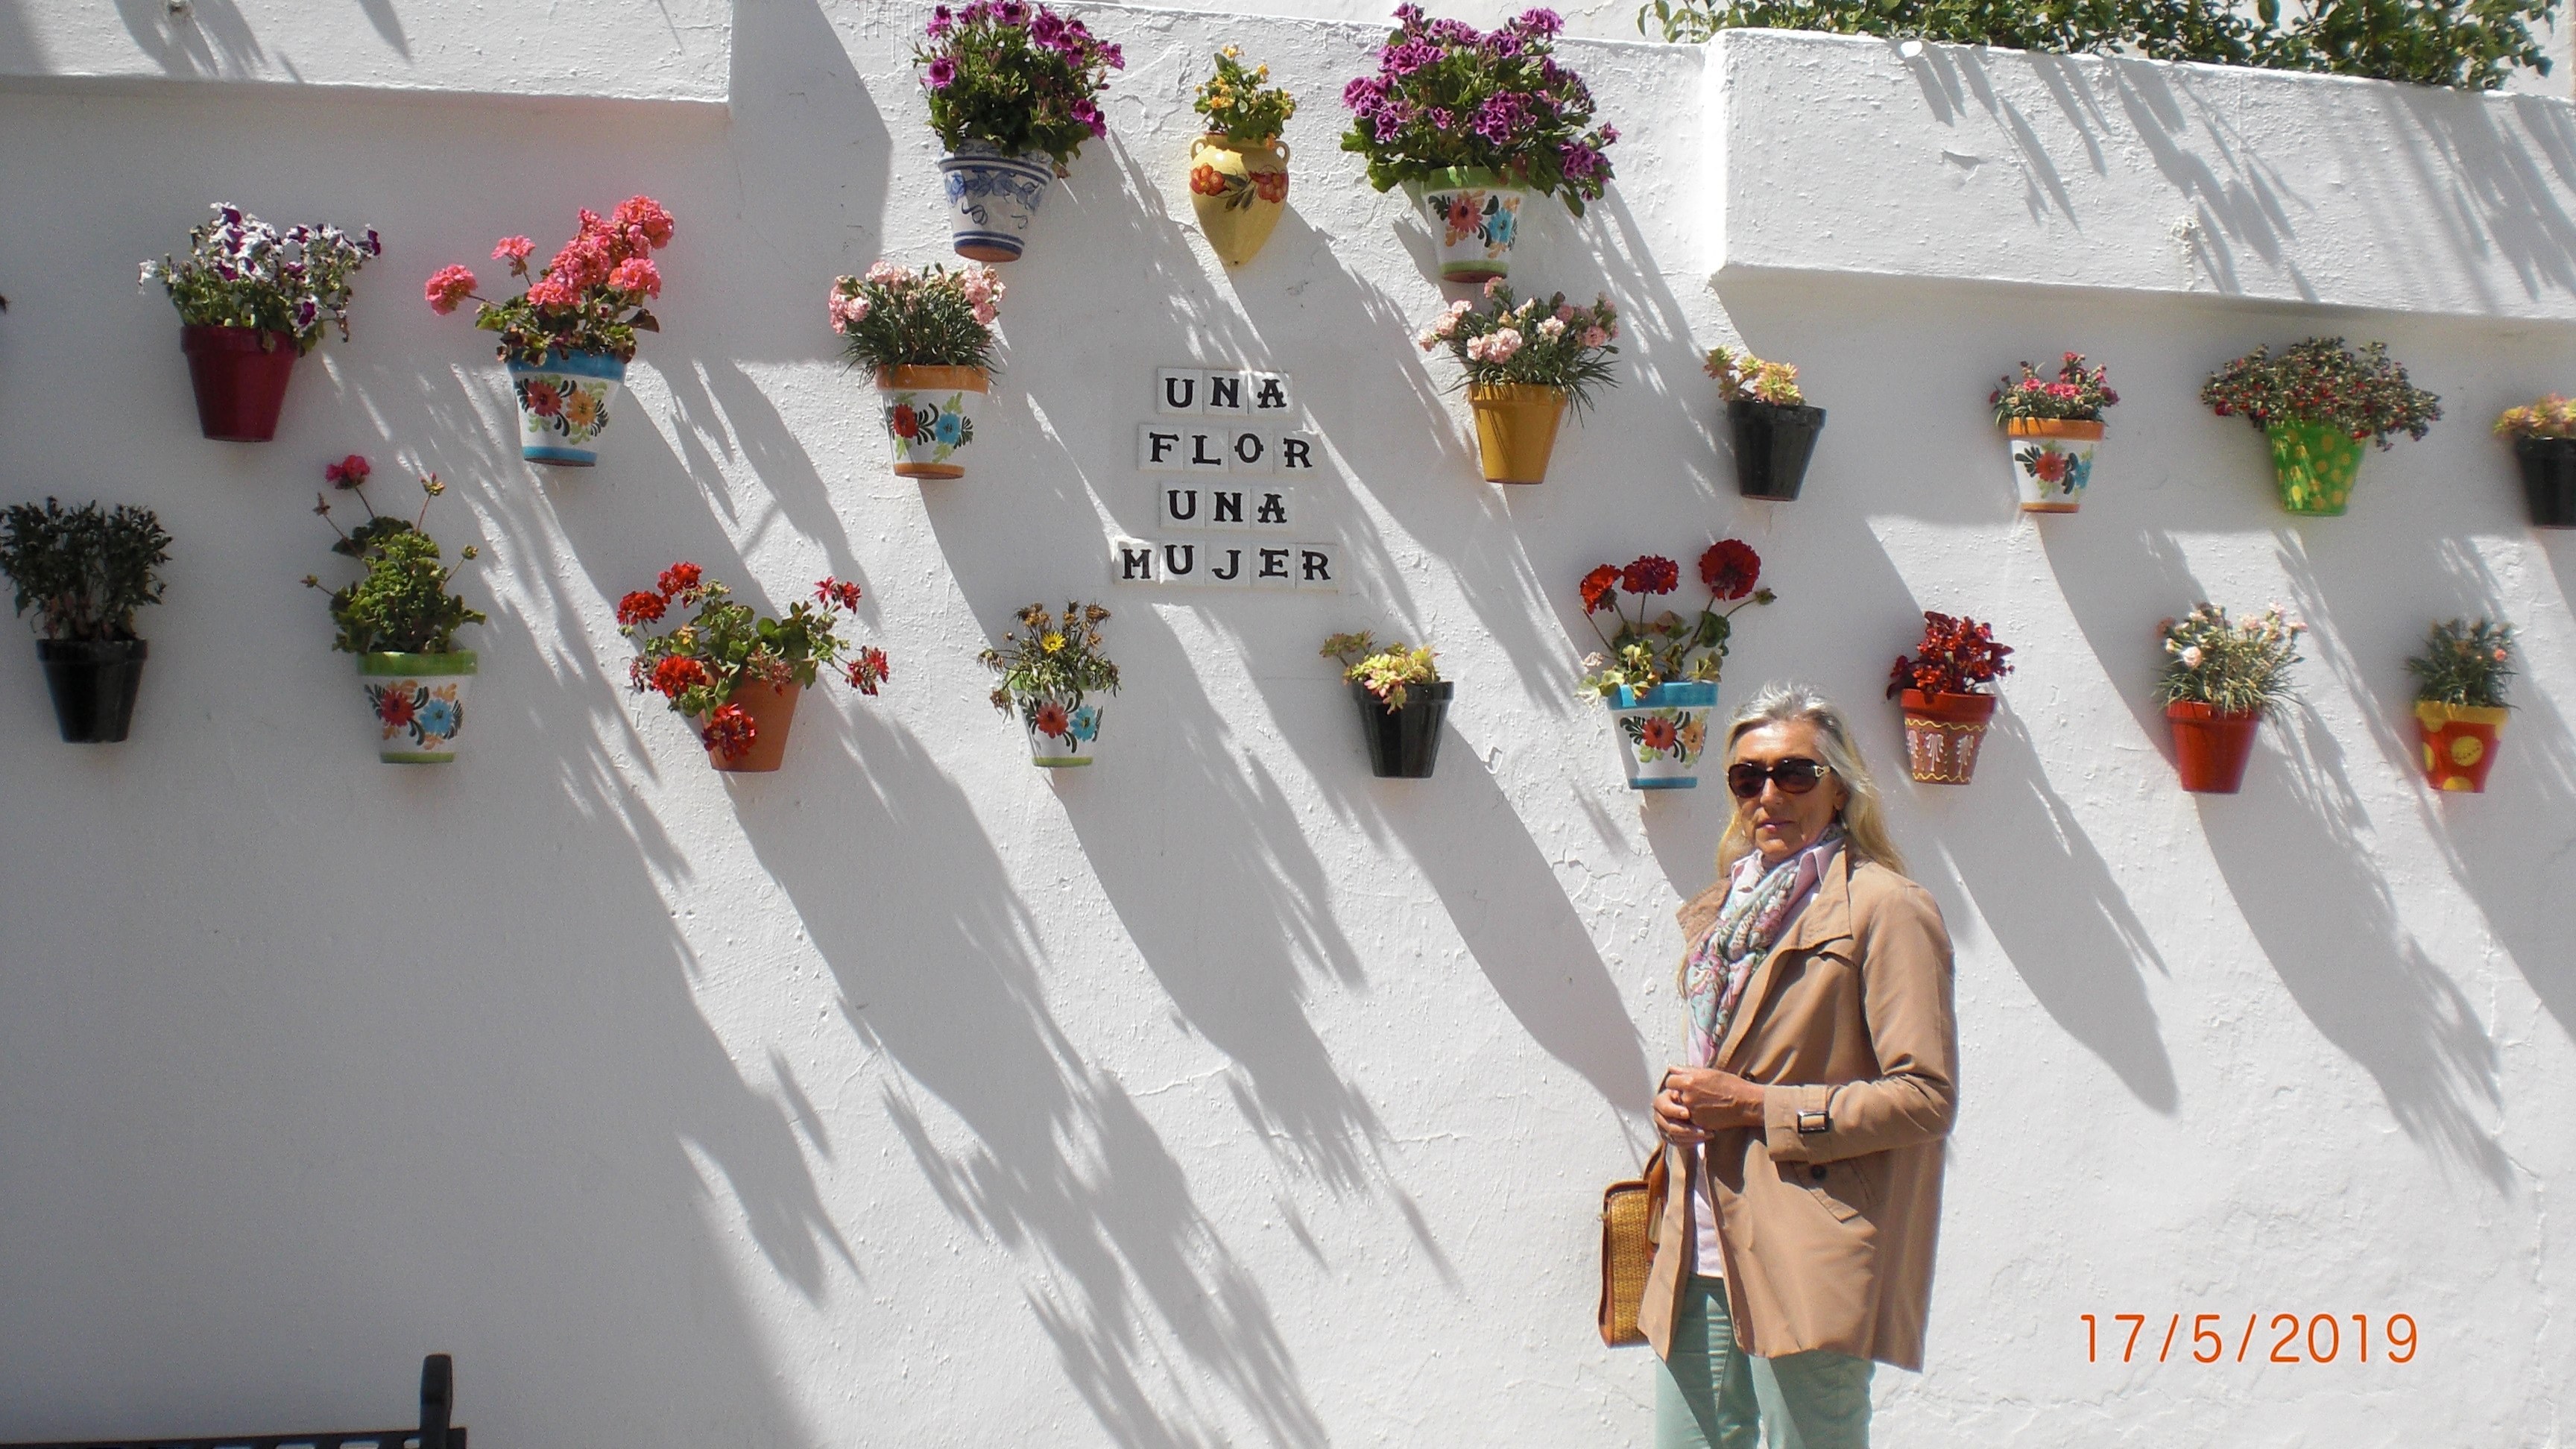 Typical Andalusian flower pots